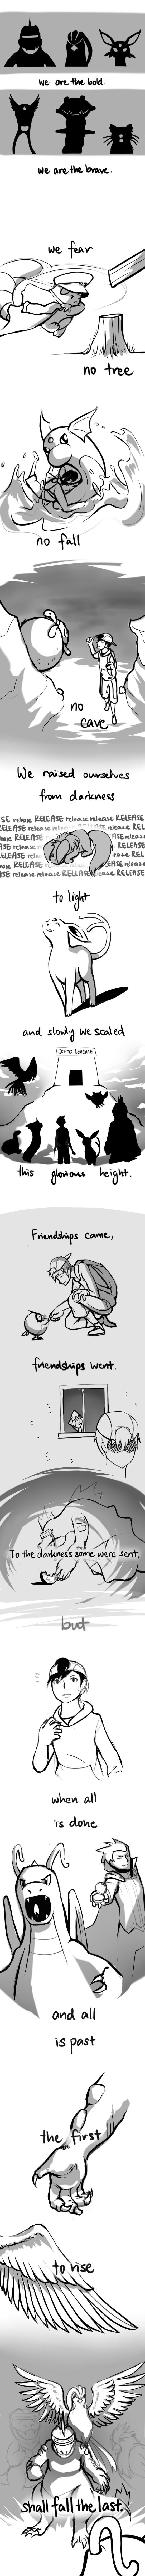 Twitch Plays Pokemon fan art. If you haven't heard about the 10,000 people all playing one game of Pokemon, you're missing out. -D